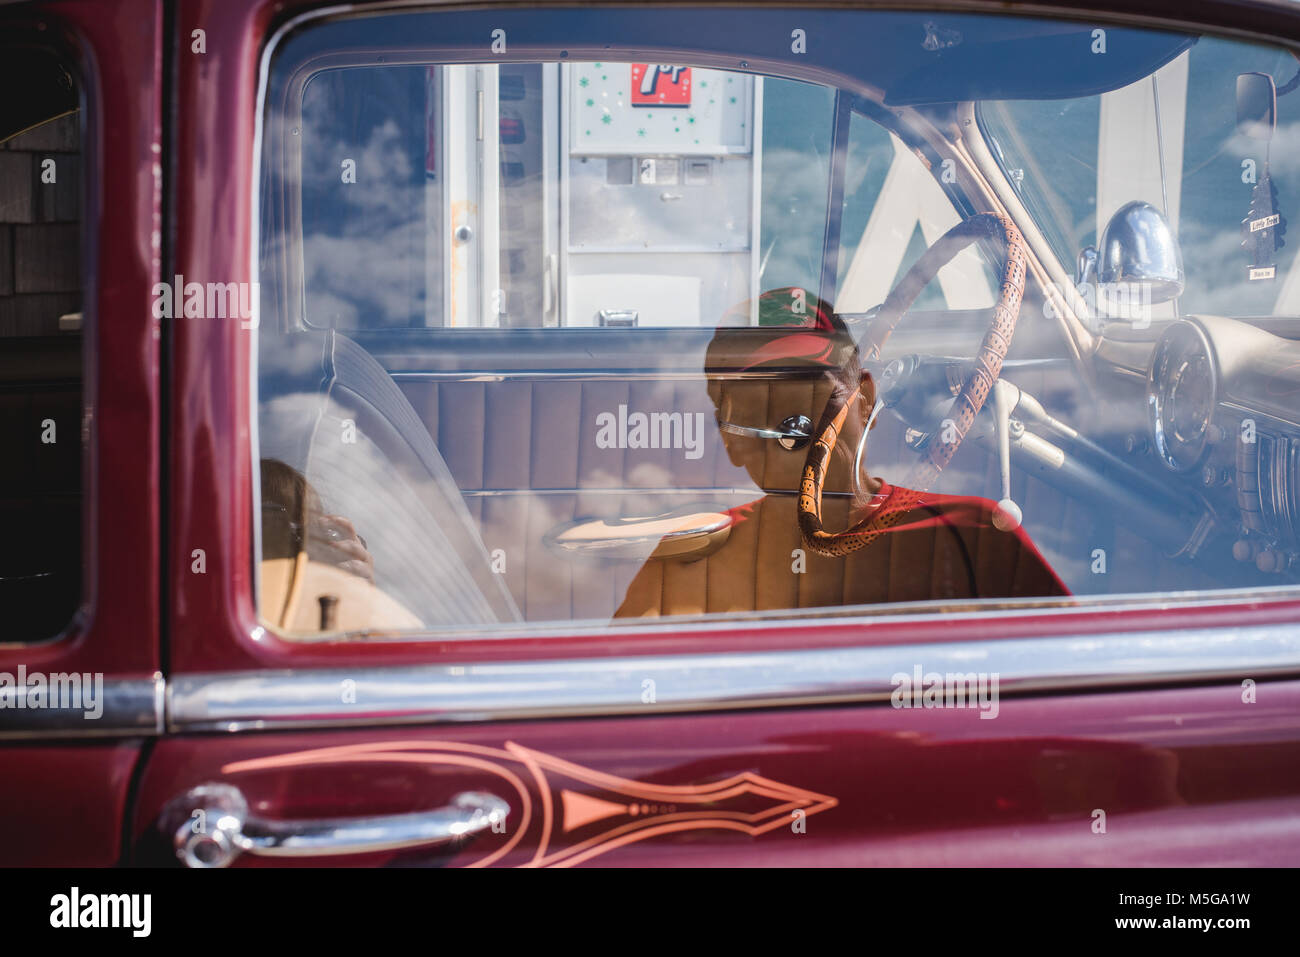 The reflection of a man in the window of a vintage Chevy car. - Stock Image